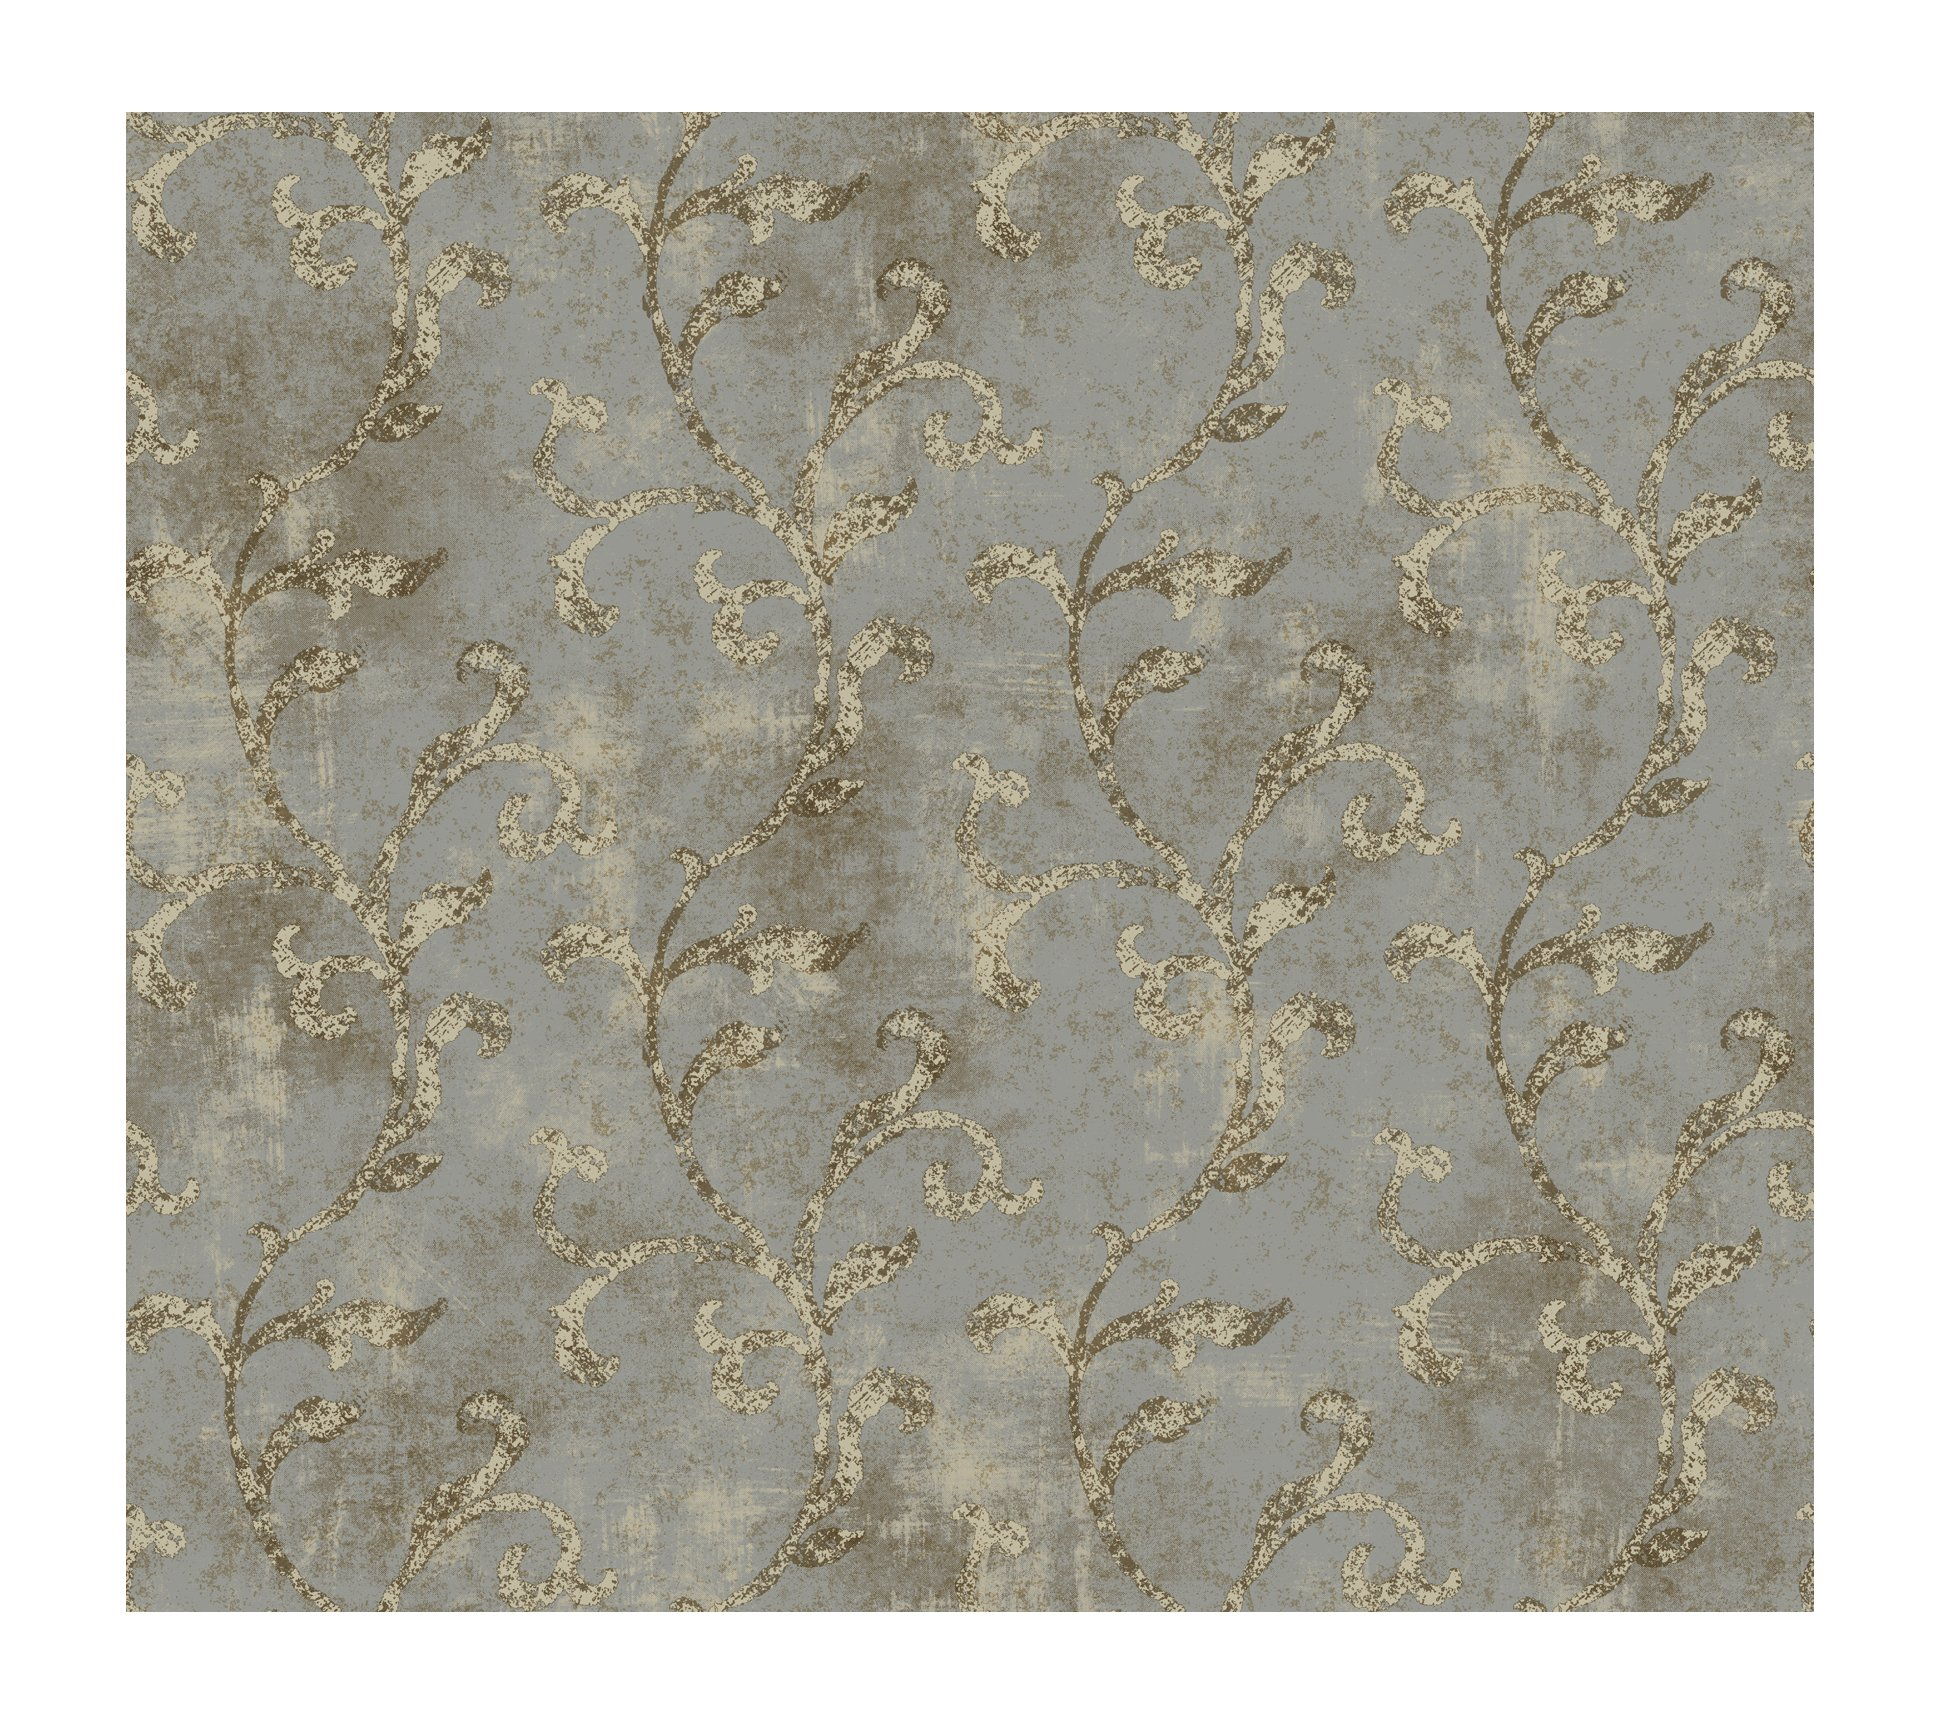 York Wallcoverings GL4604SMP Brandywine Textured Scroll 8-Inch x 10-Inch Wallpaper Memo Sample, Platinum/Fawn Beige/Antique Ivory/Bronze